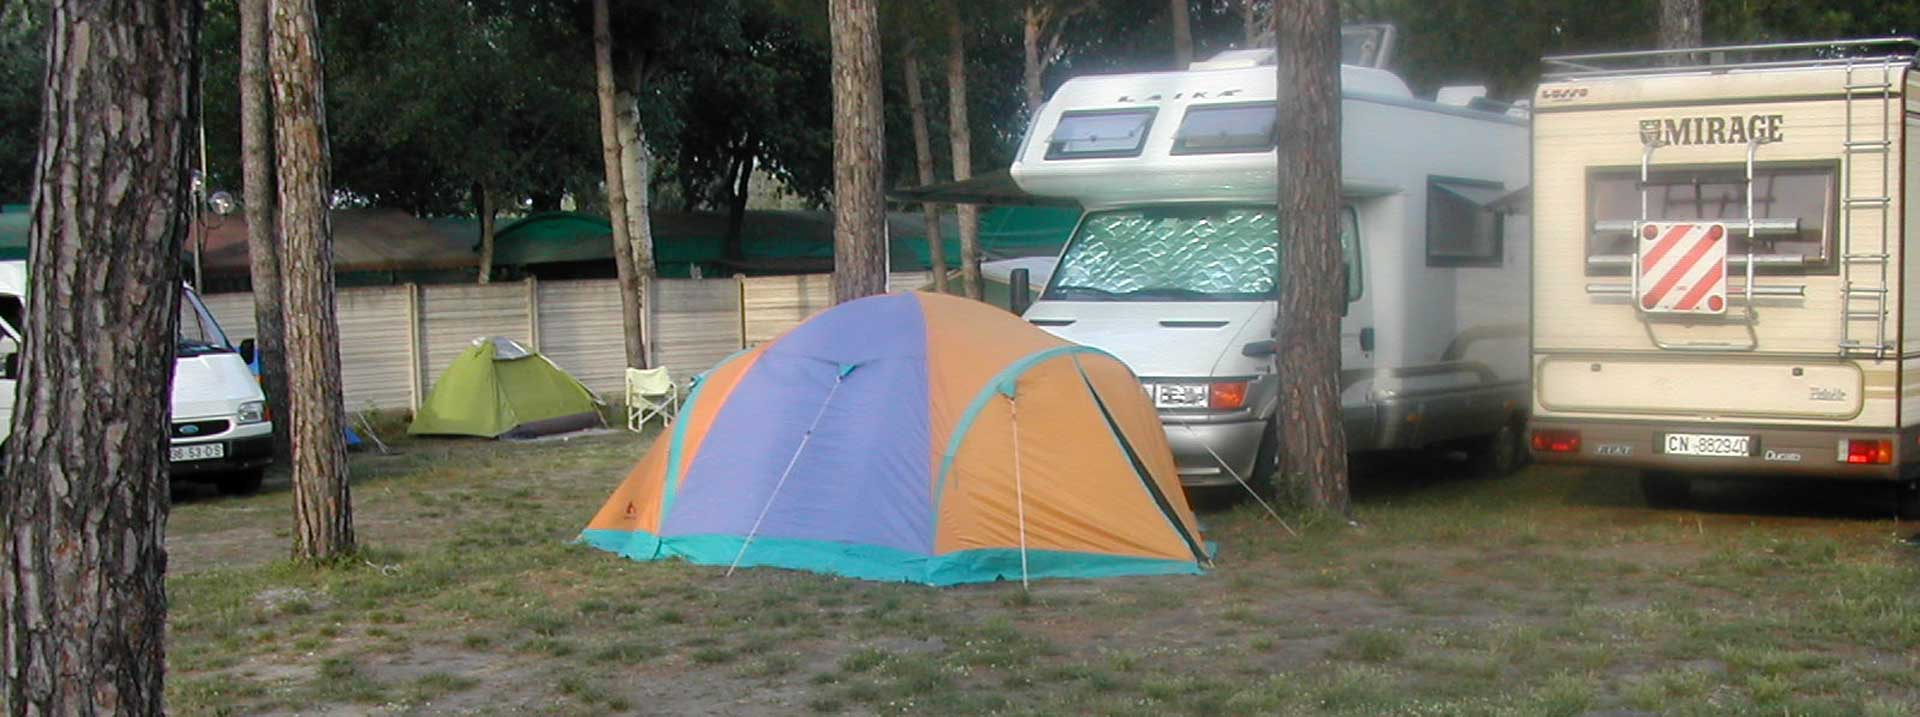 The Camping has pitches for tent and caravans